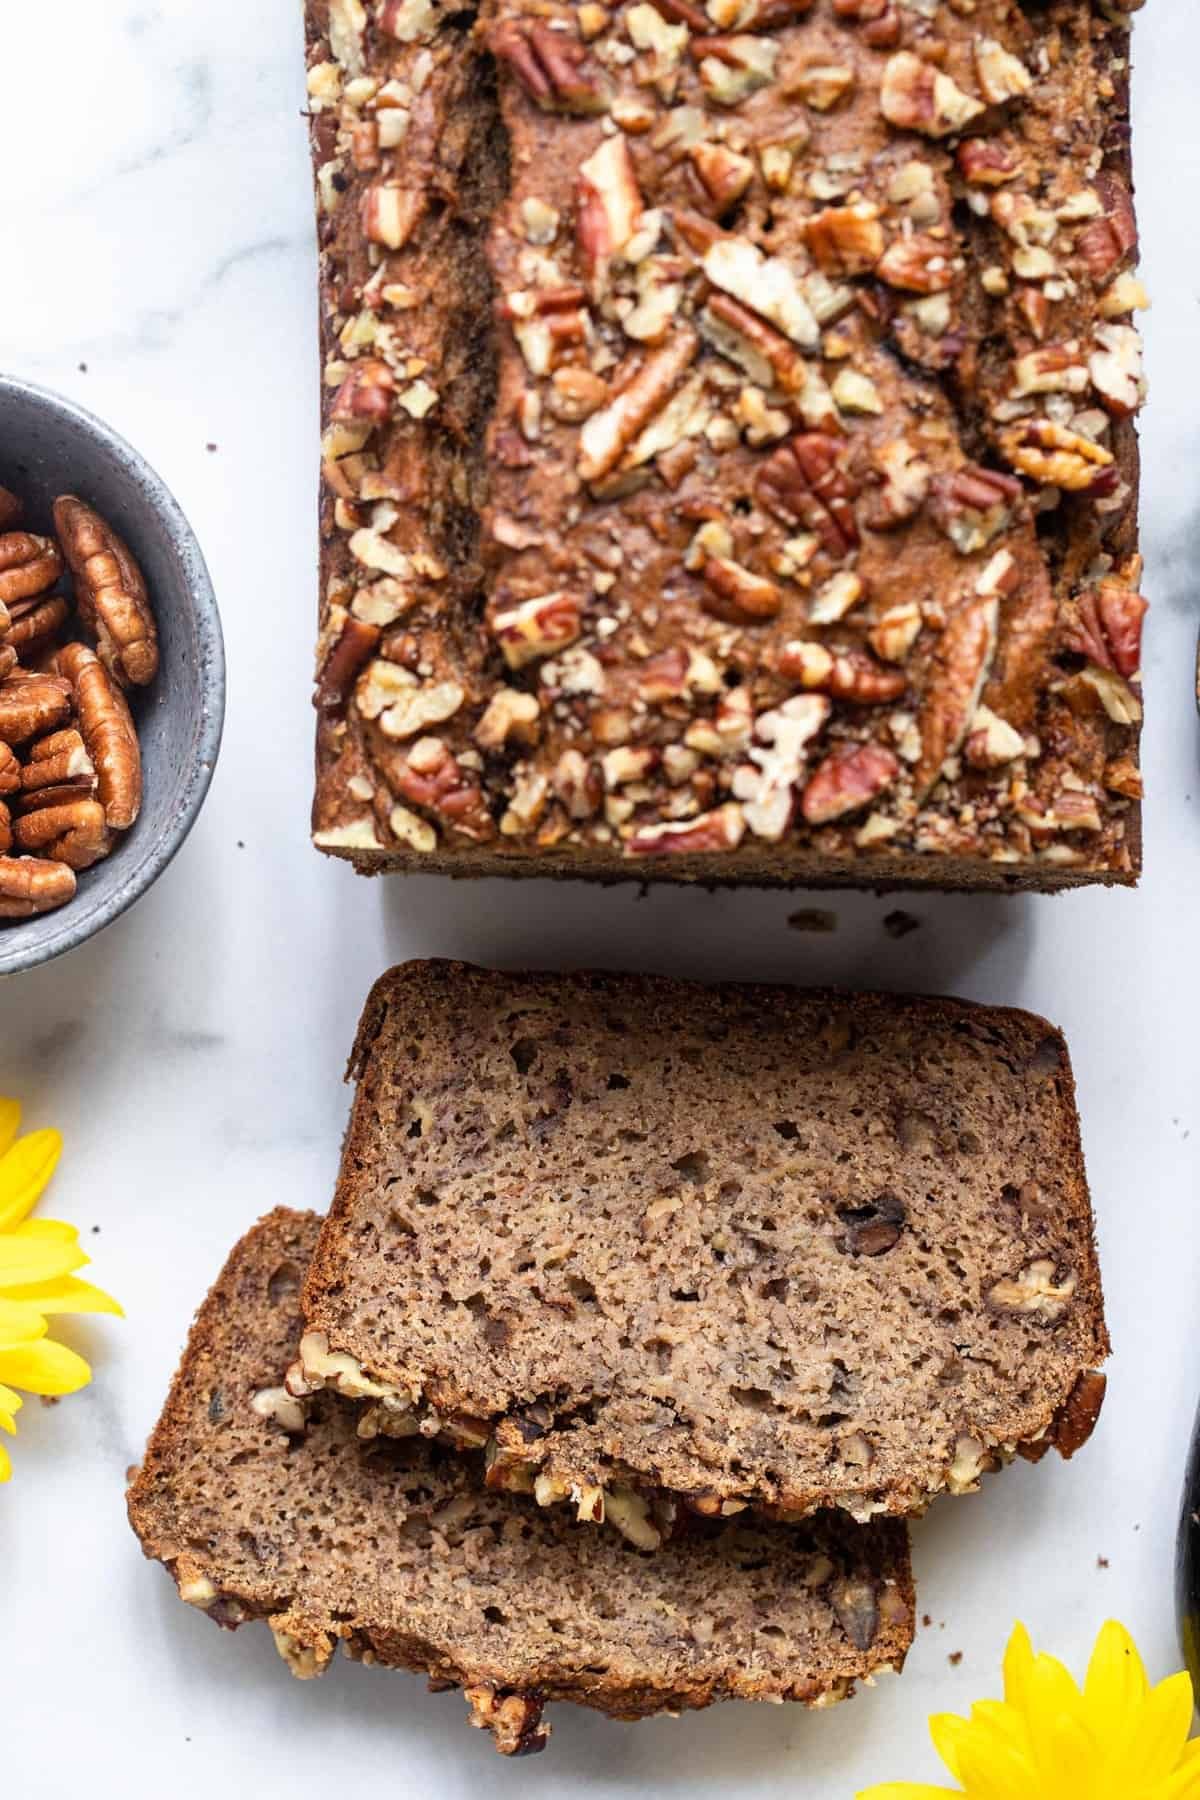 Close up of the top of a no sugar added banana bread sliced